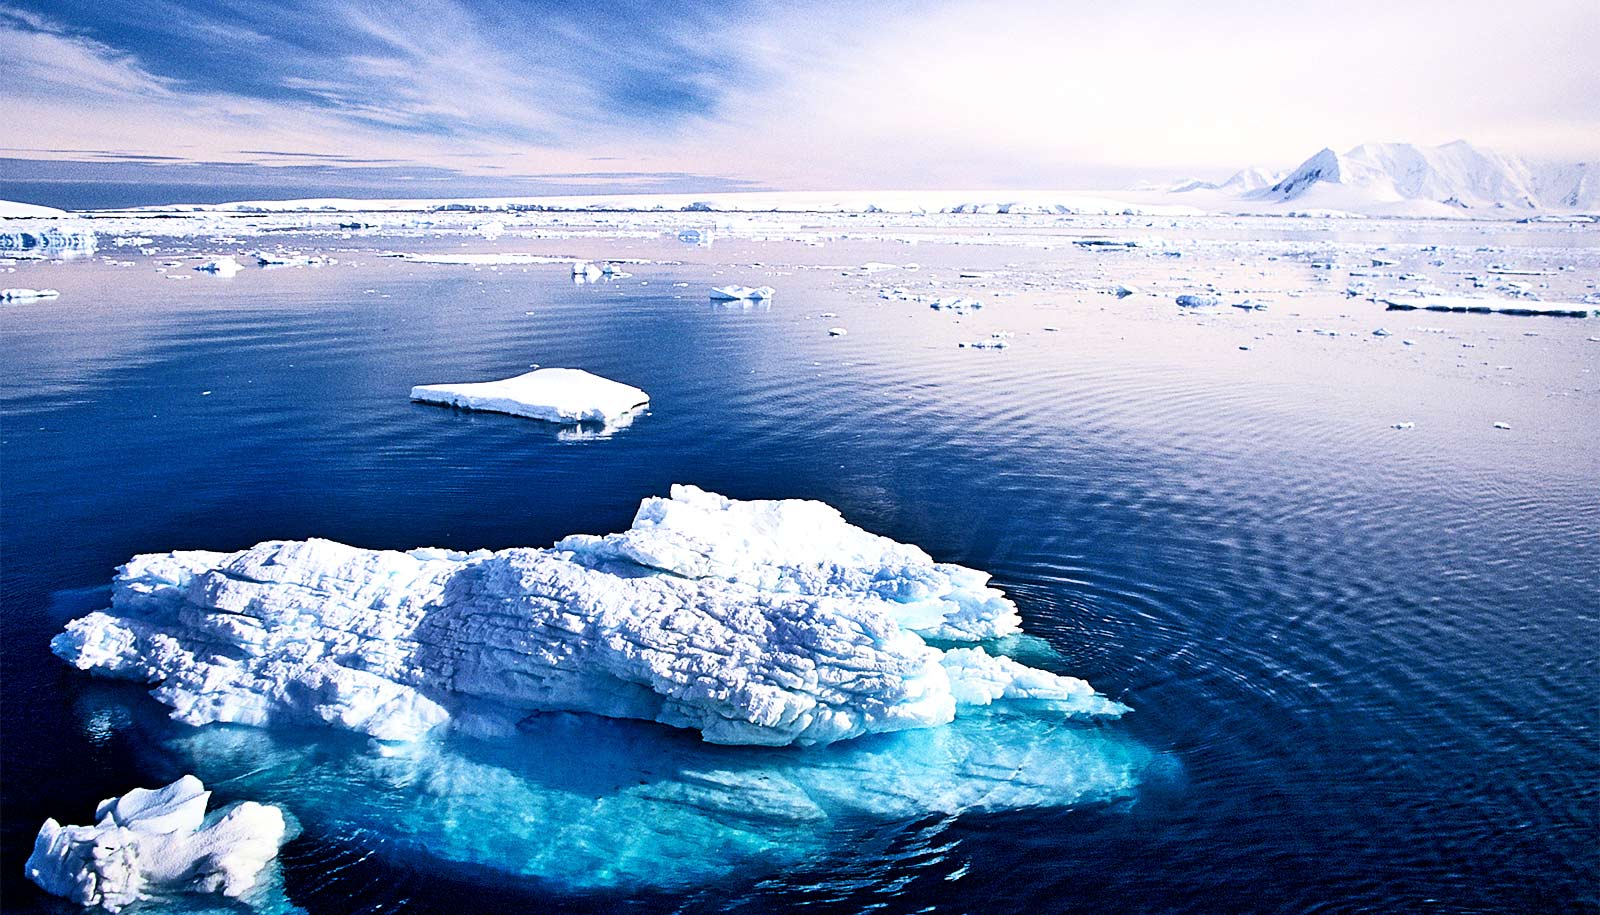 Ice sheets 'talk' to each other across the planet - Futurity: Research News